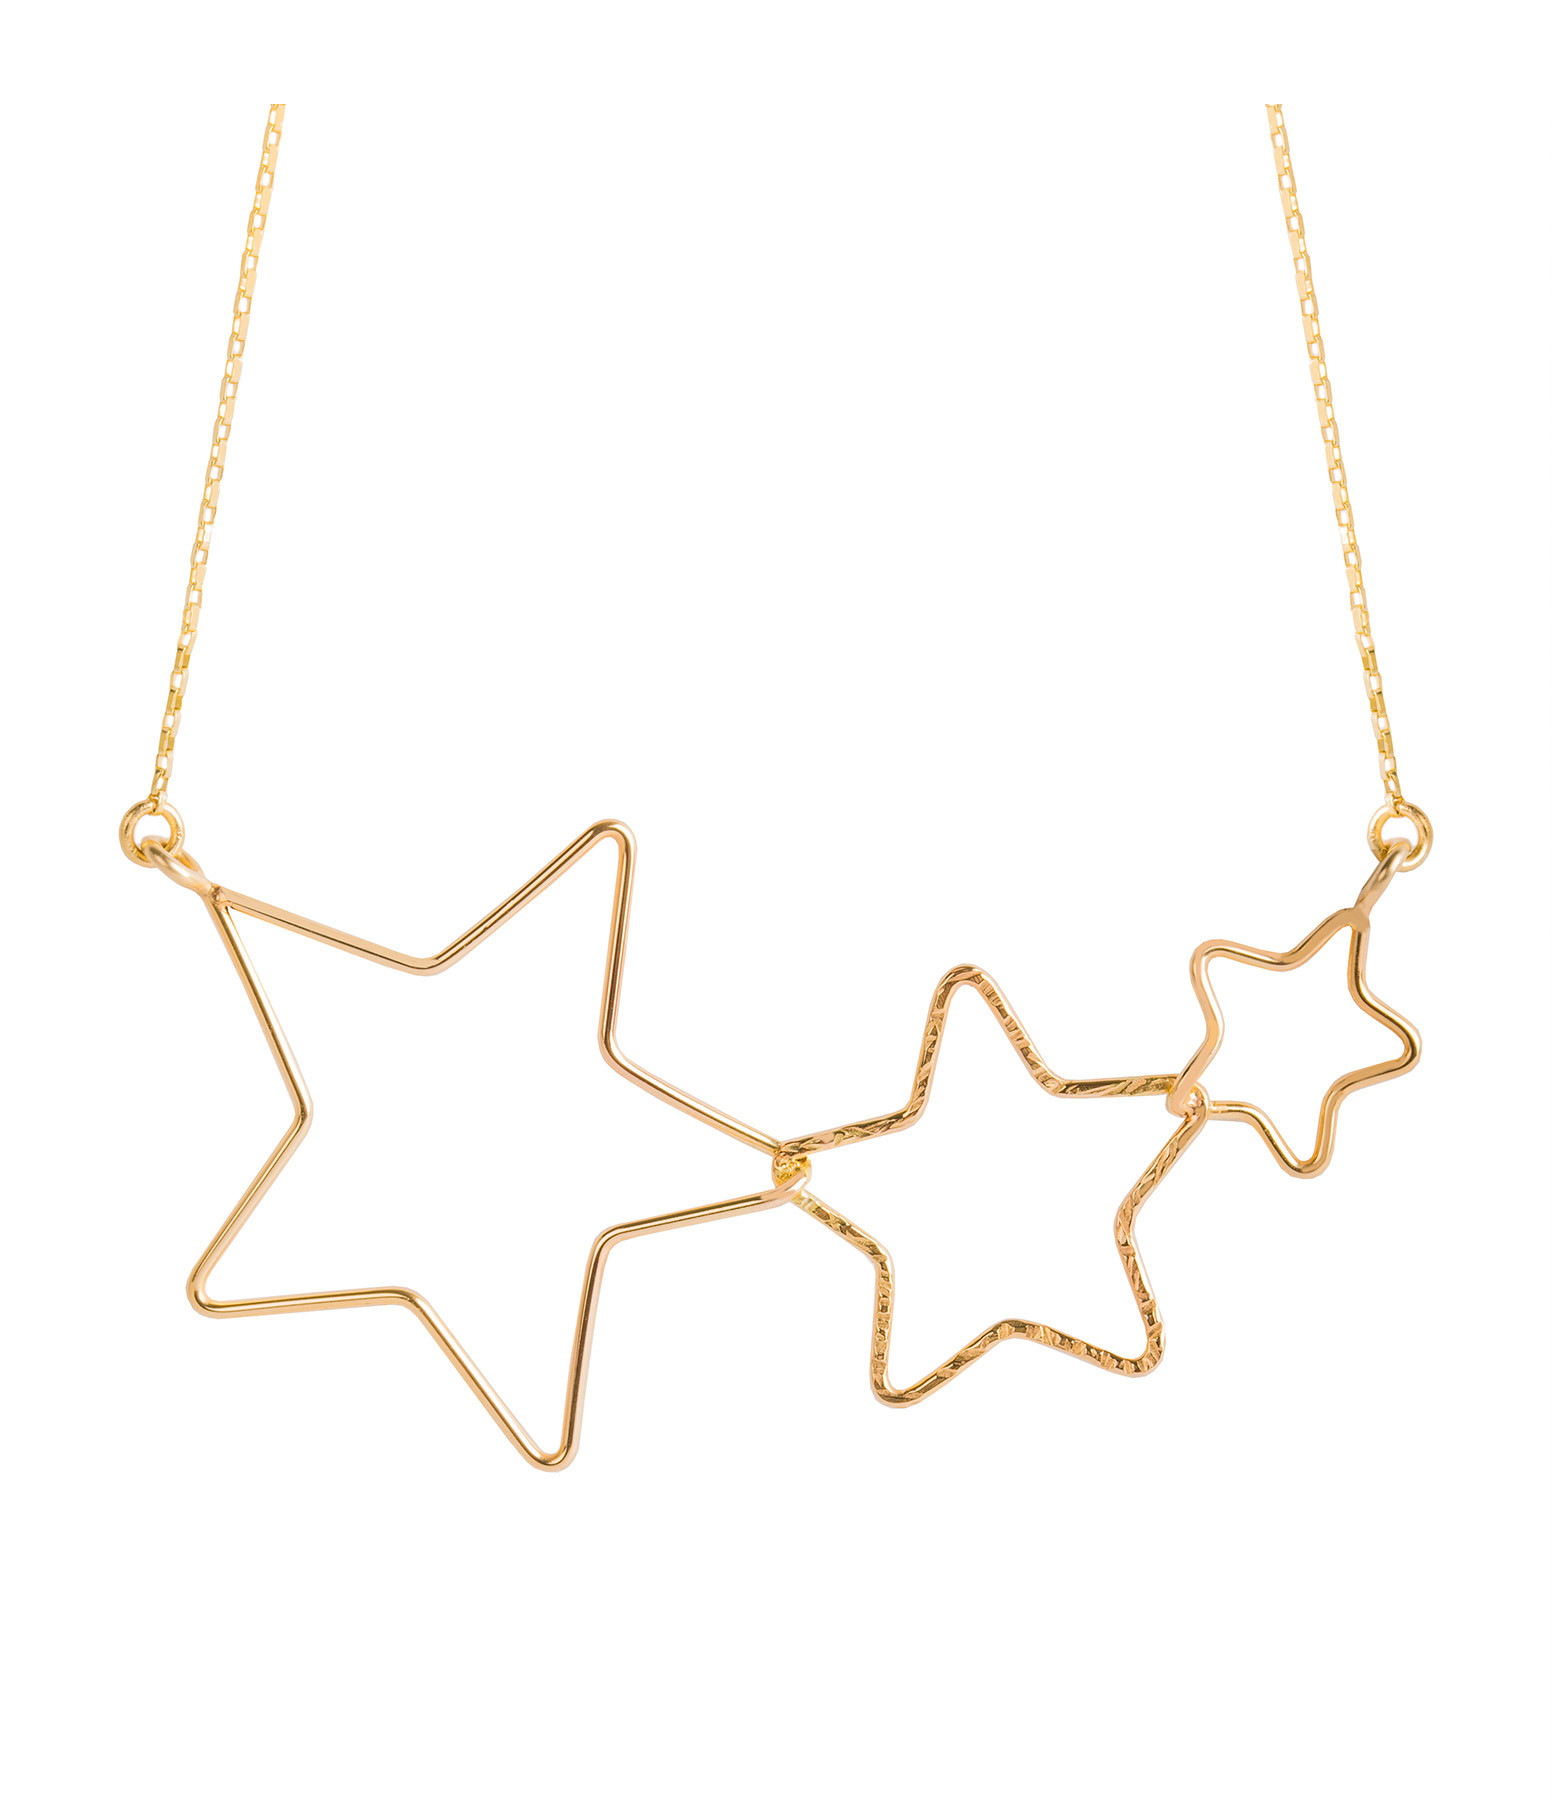 ATELIER PAULIN - Collier Stardust Milky Way Gold Filled 14K